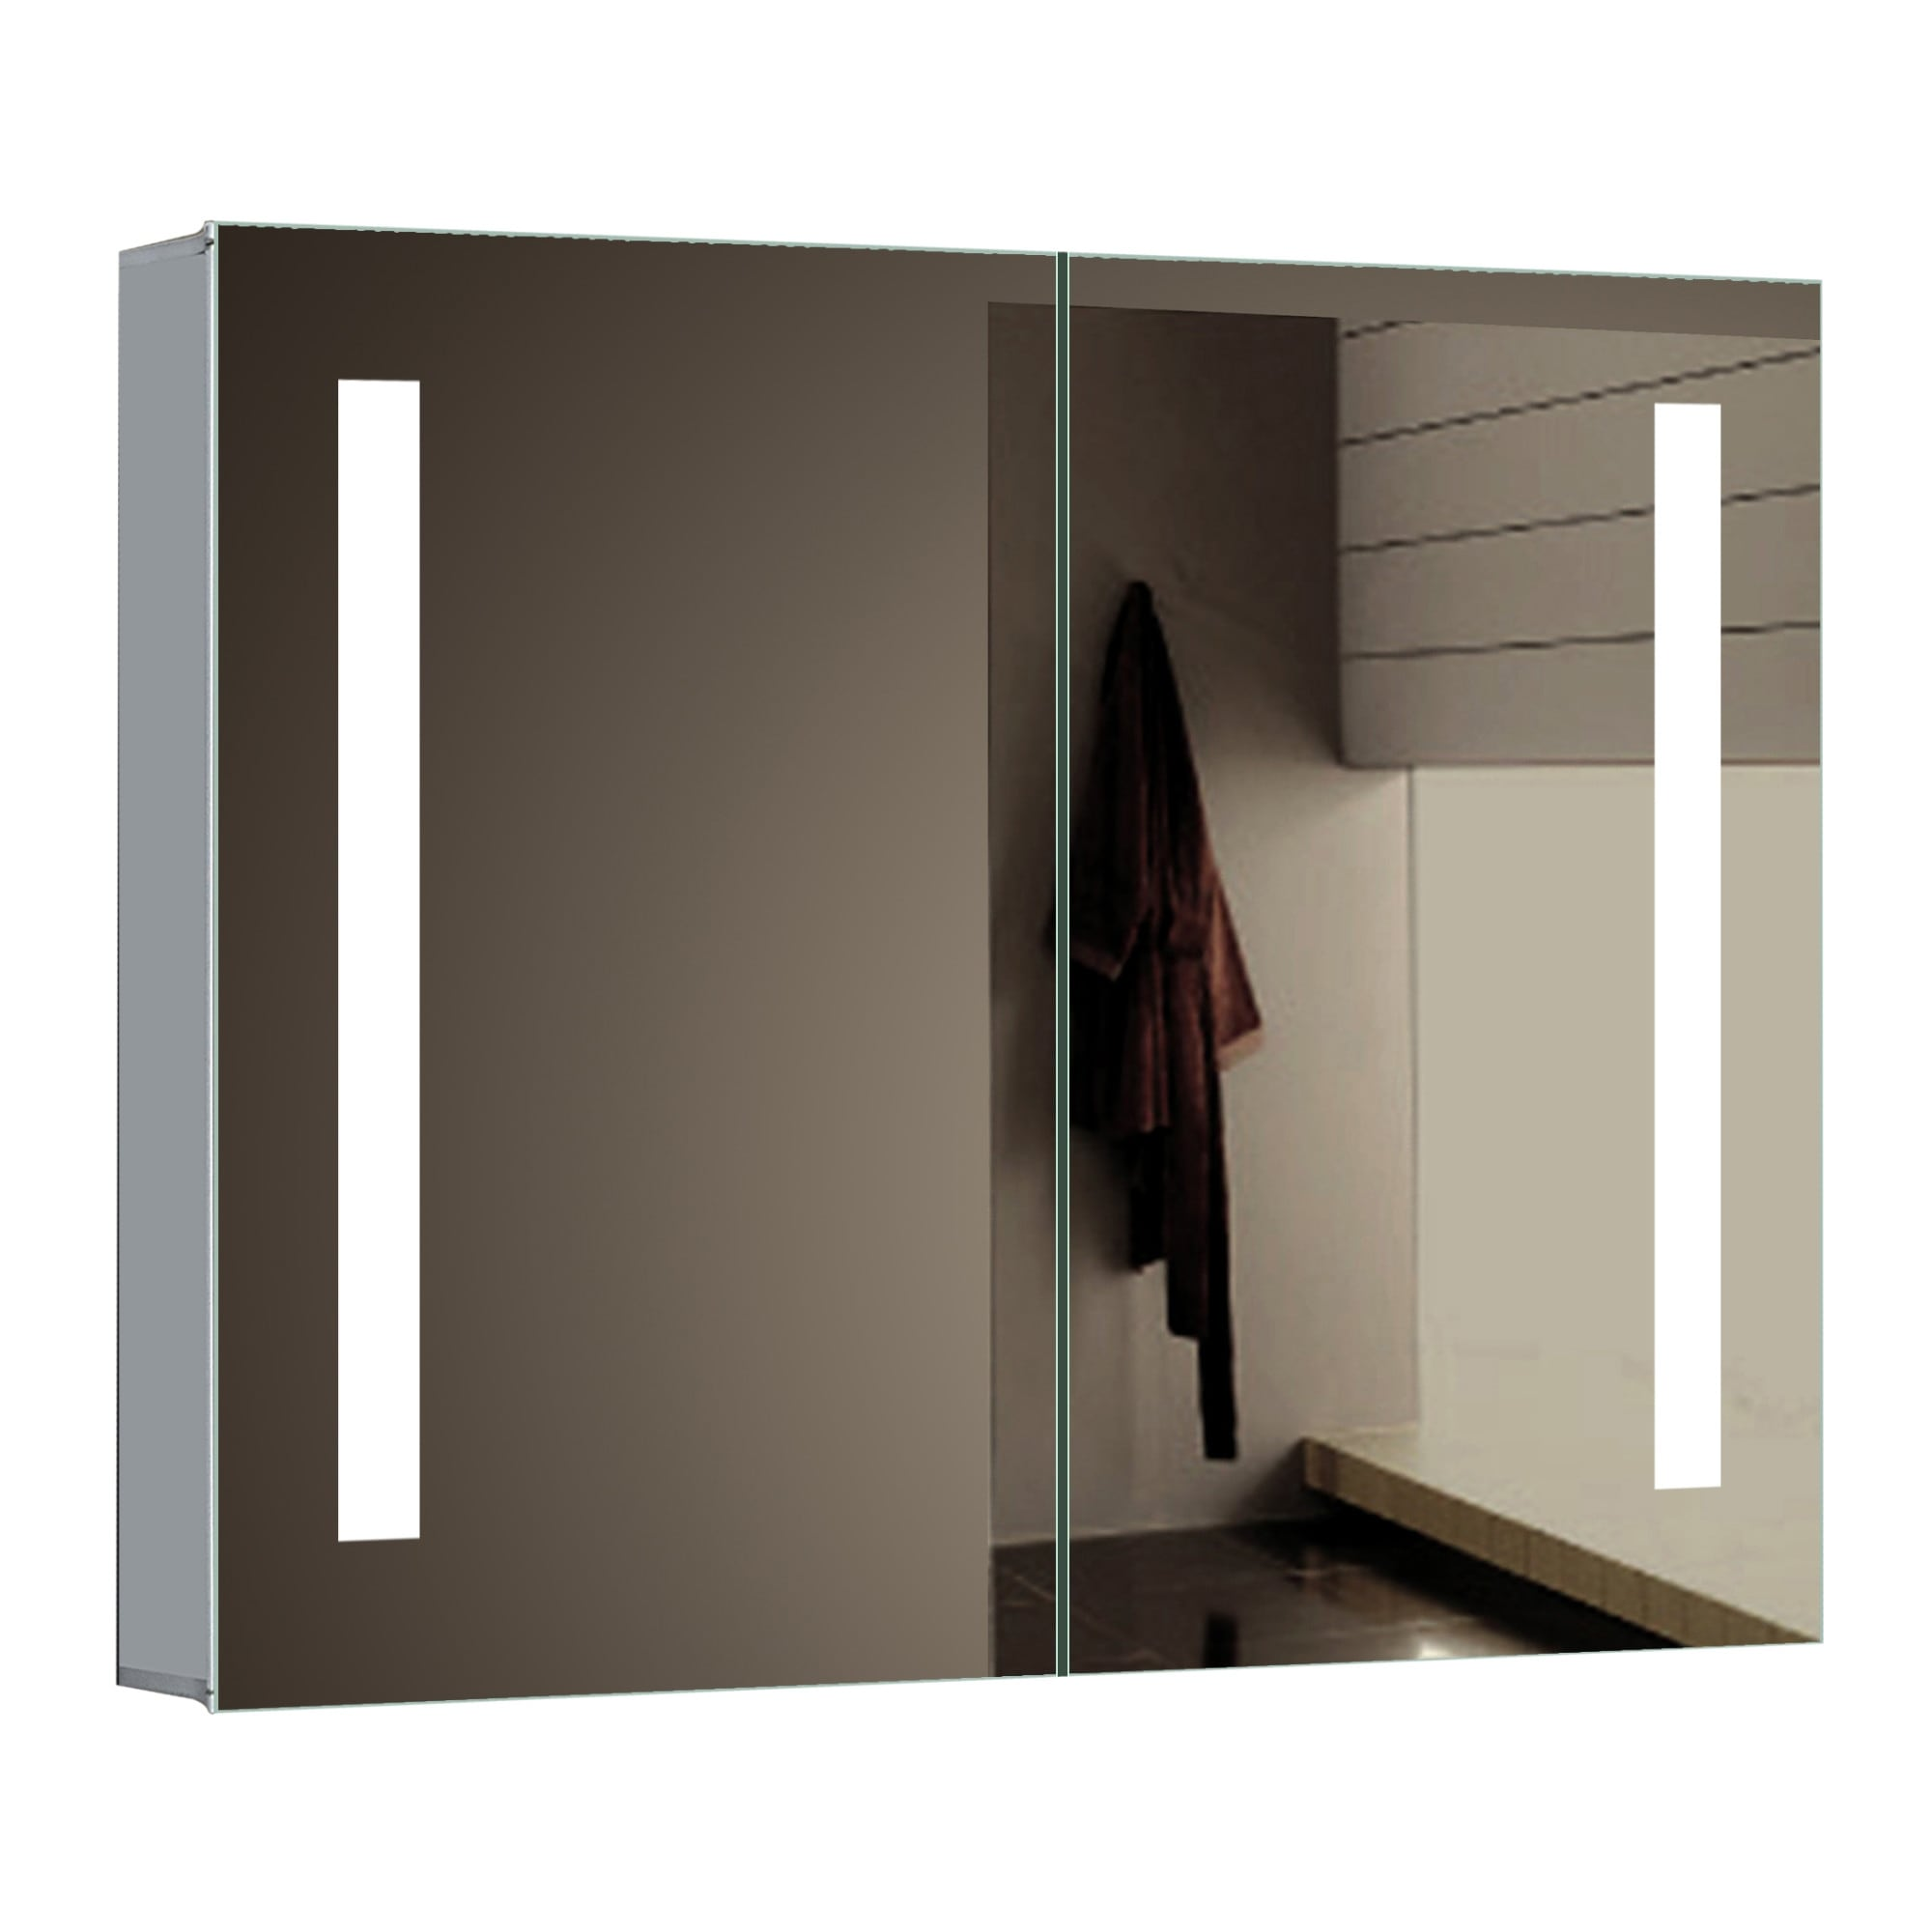 Shop Miseno Mmc3026led 30 W X 26 H Rectangular Frameless Wall Mounted Medicine Cabinet With Led Lighting Mirrored N A Free Shipping Today Overstock 17325787